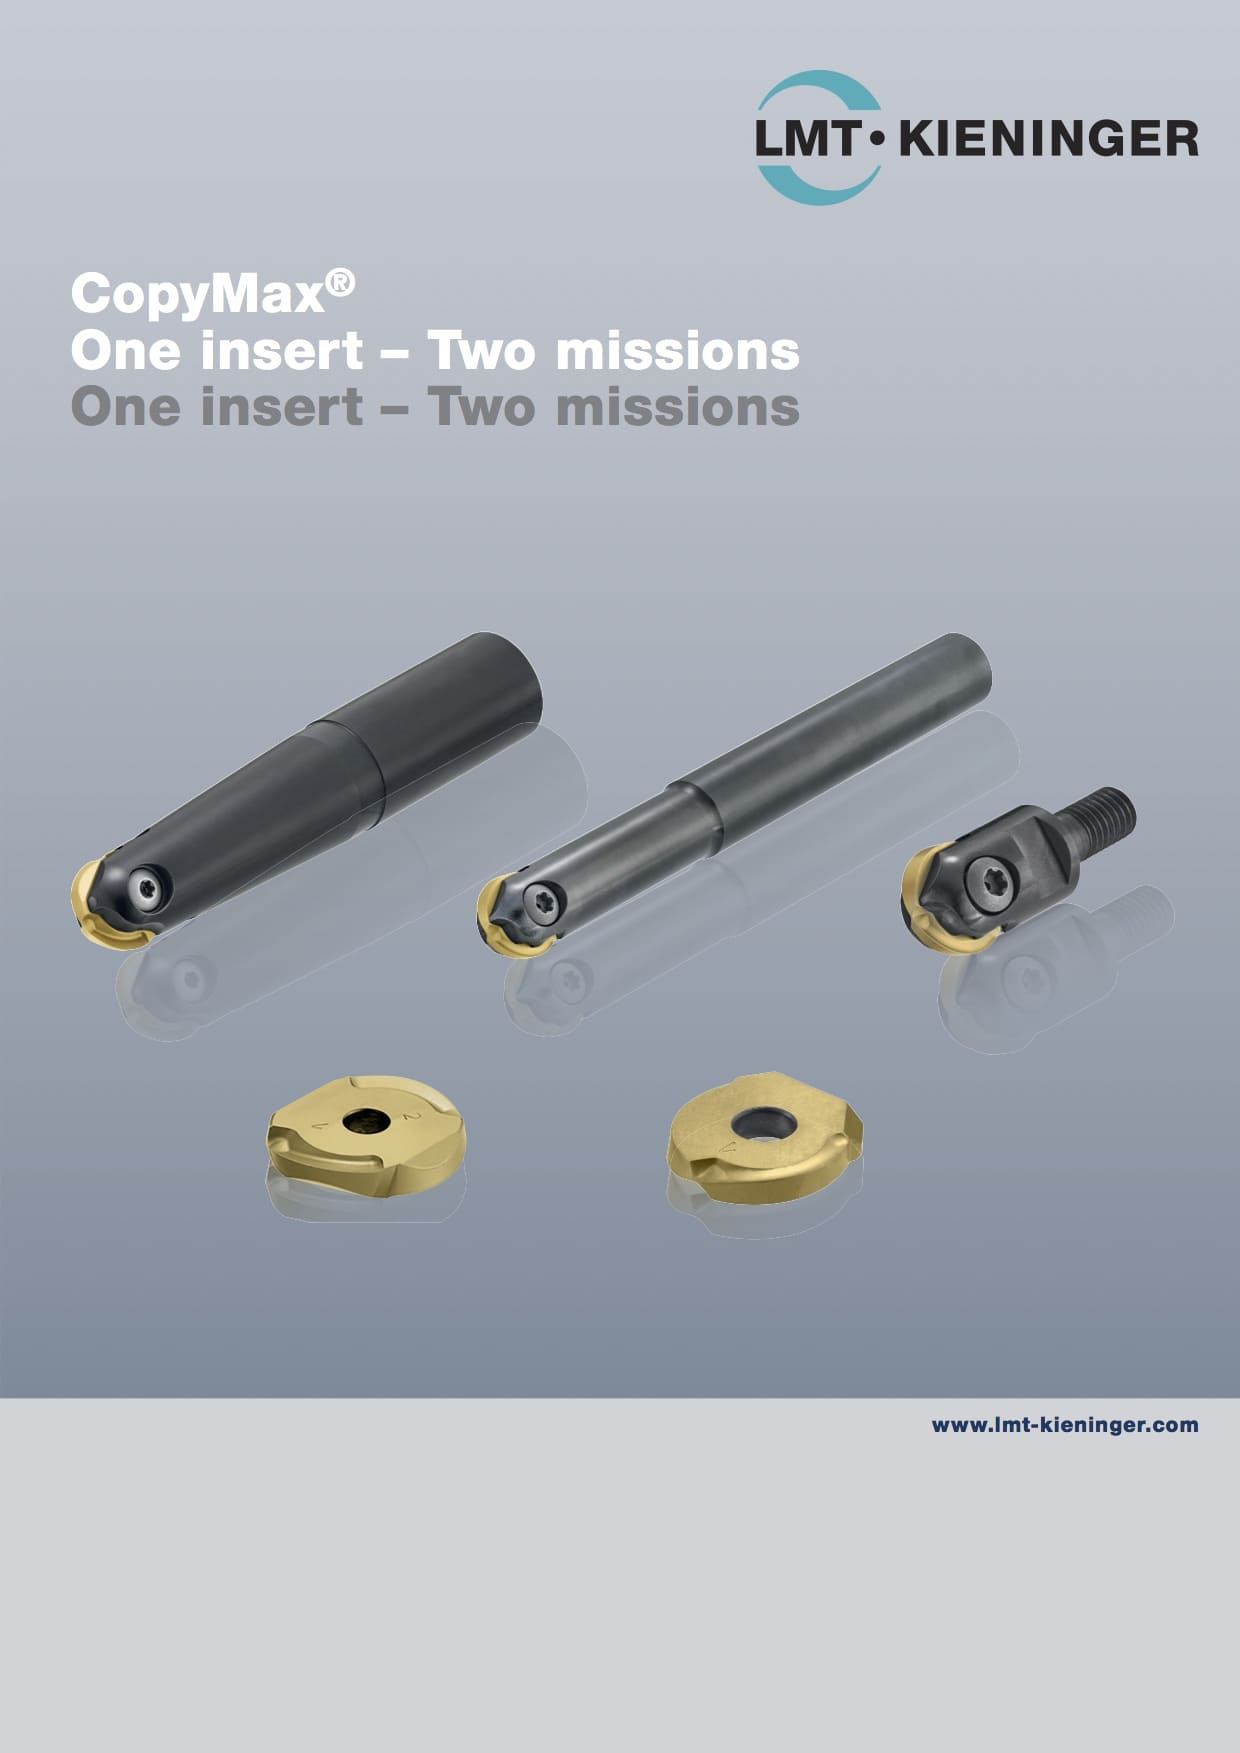 CopyMax - One insert Two missions